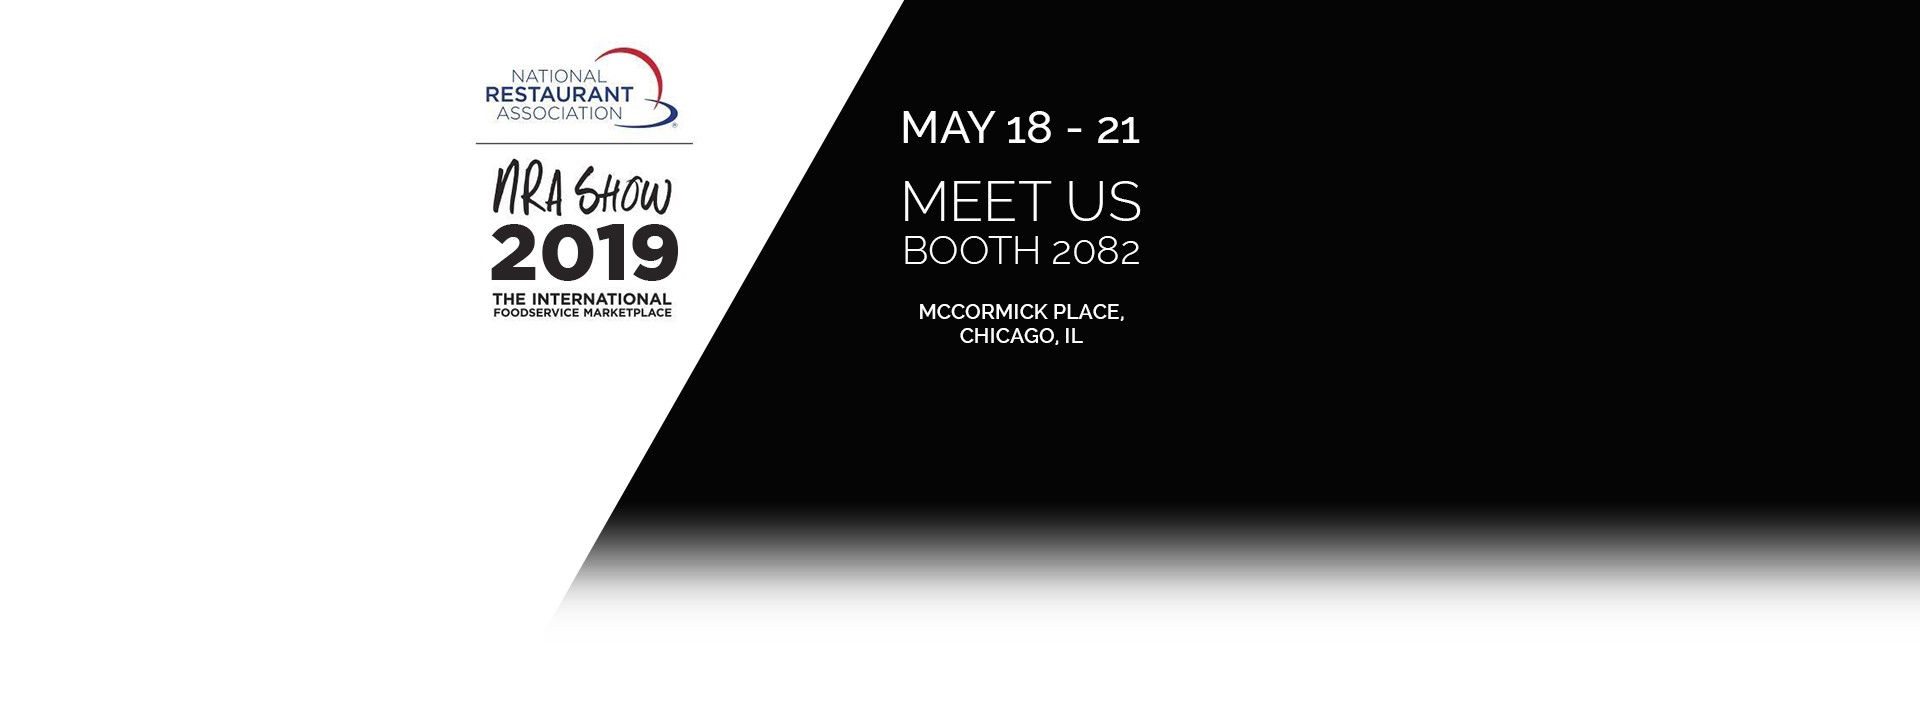 Exhibition - National Restaurant Association 2019 (NRA) in Chicago